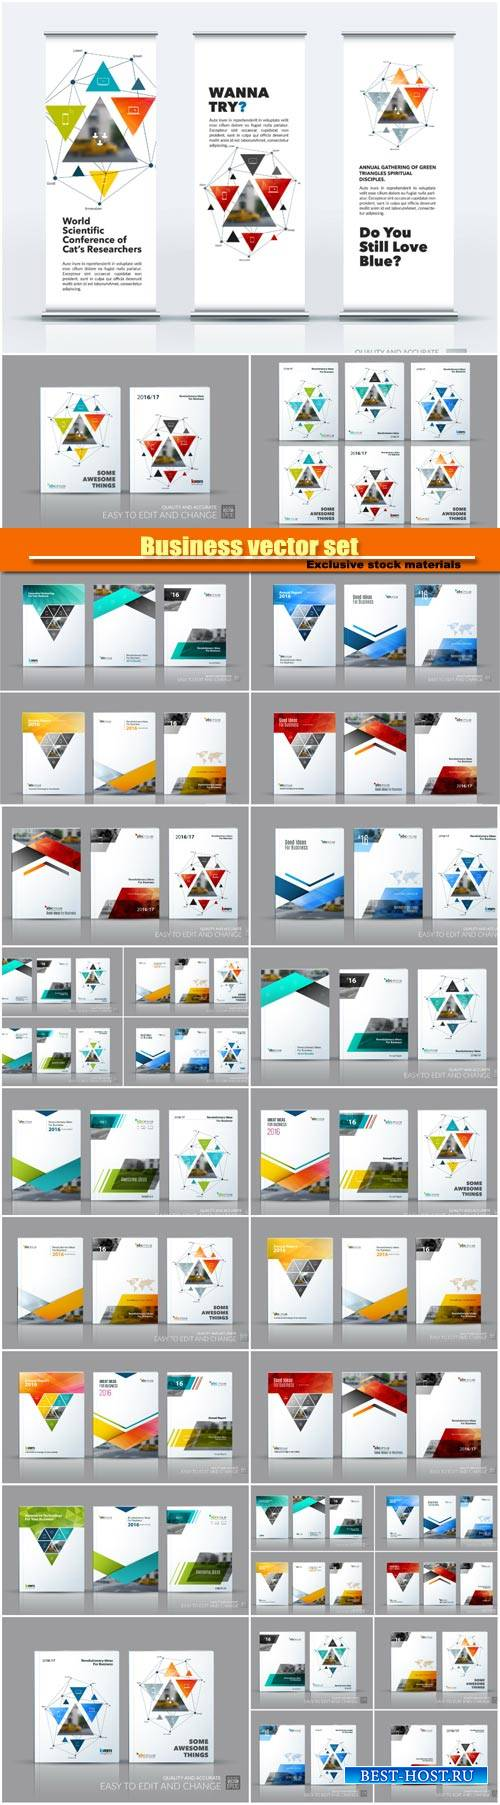 Business vector set, brochure template layout, cover design annual report